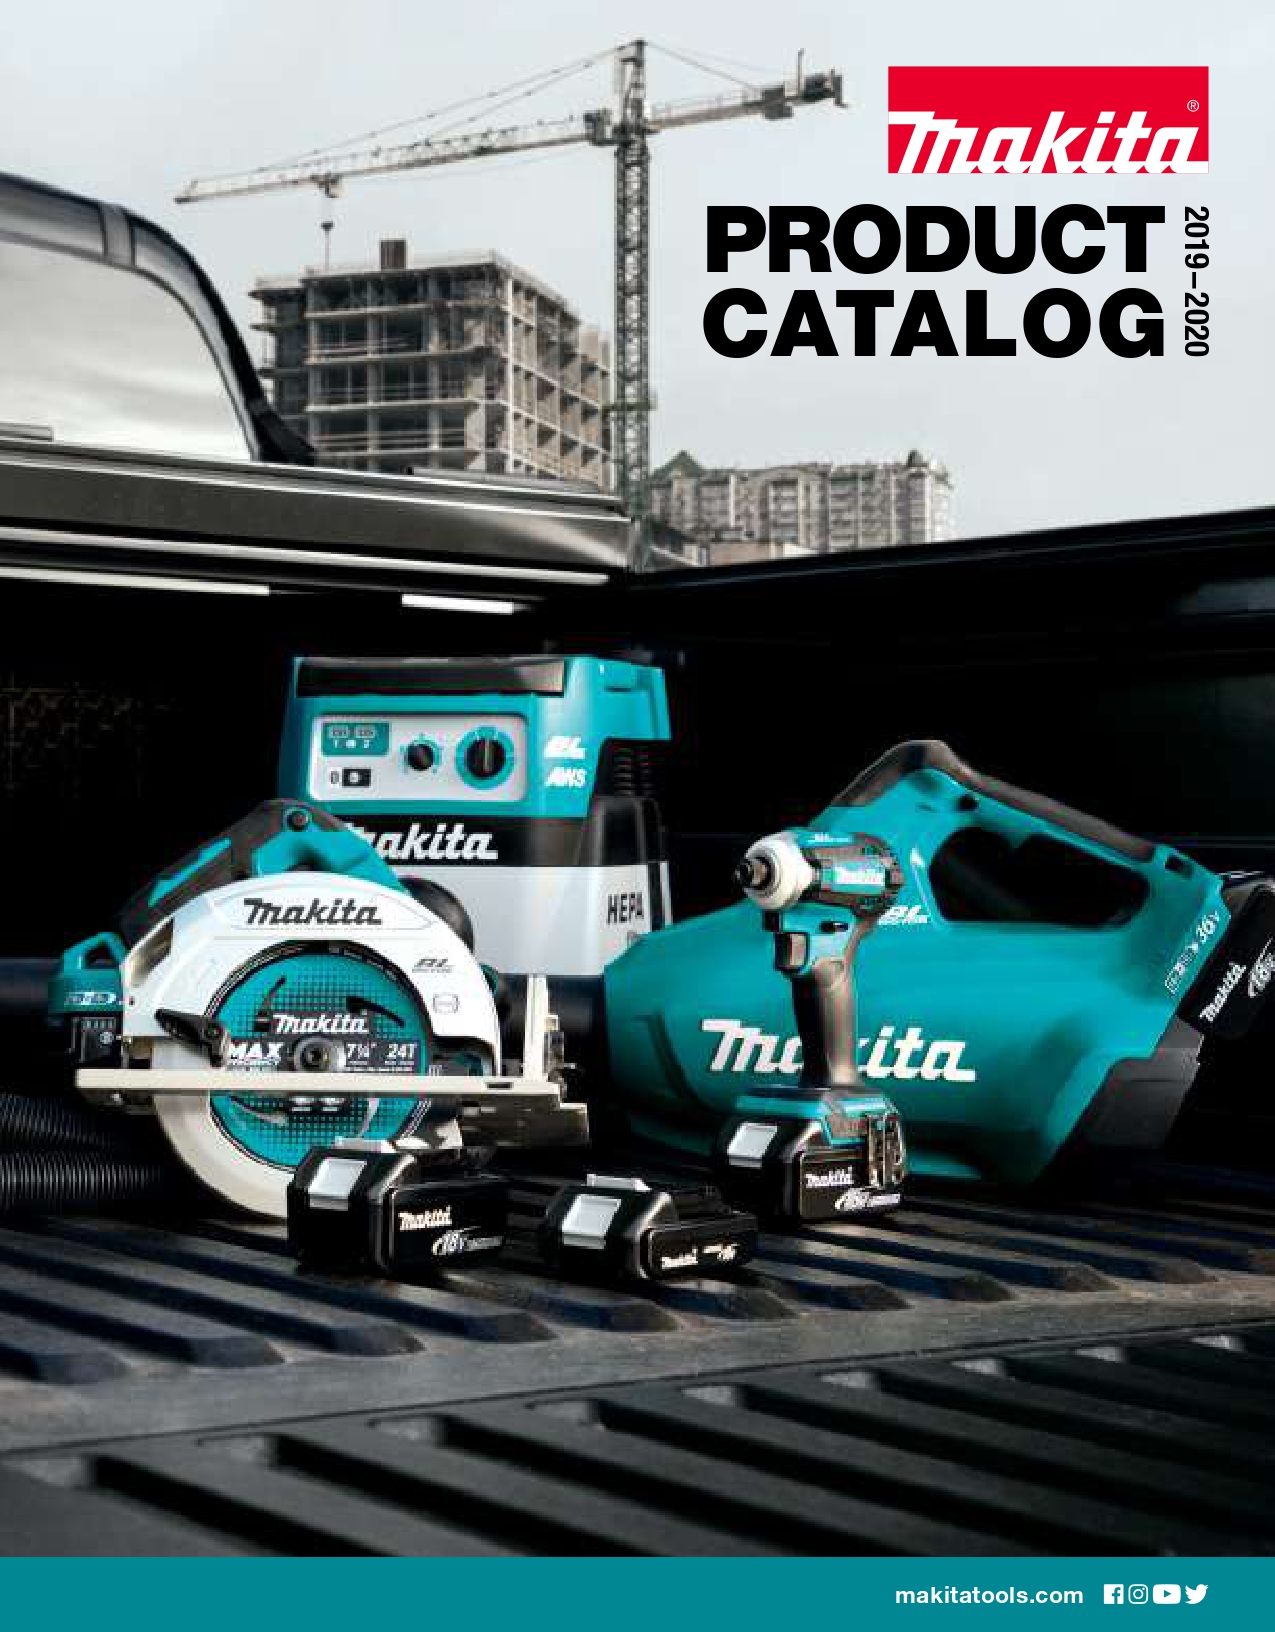 Makita catalogo geral_extractPDFpages_Page1-1.pdf_1